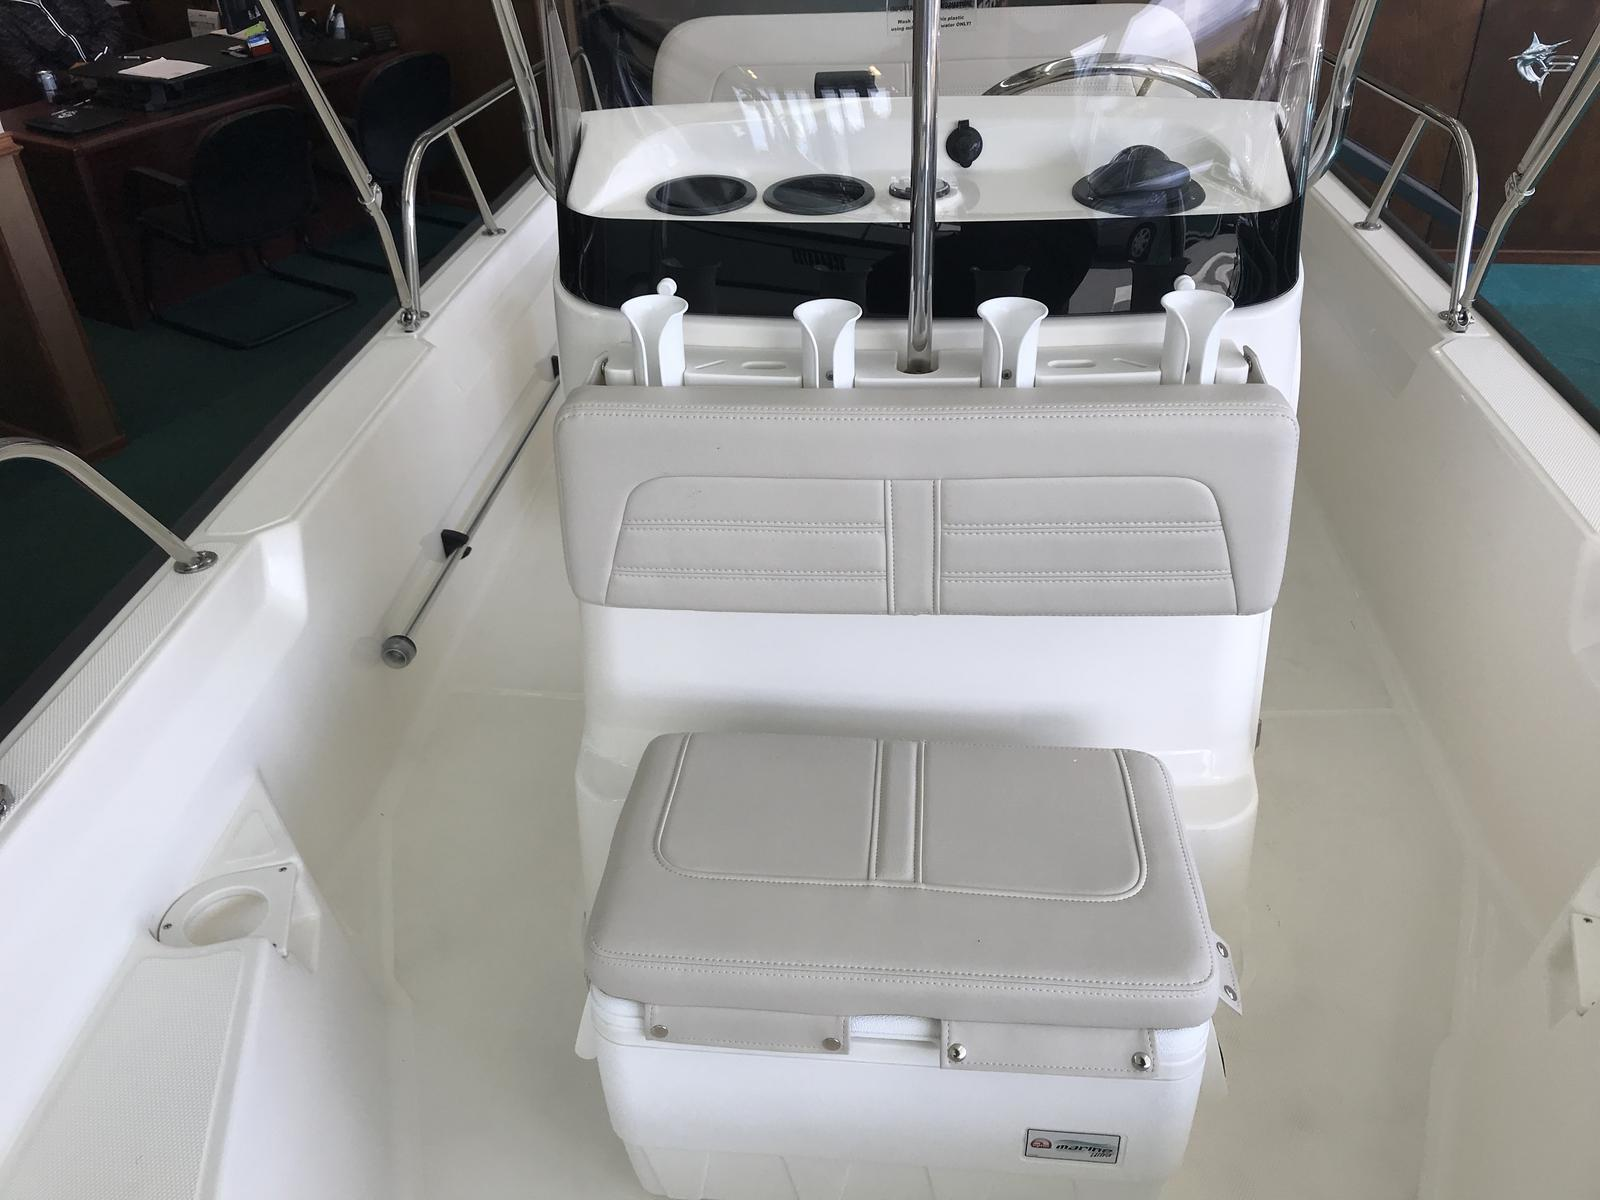 2019 Boston Whaler boat for sale, model of the boat is 150 Montauk & Image # 3 of 11